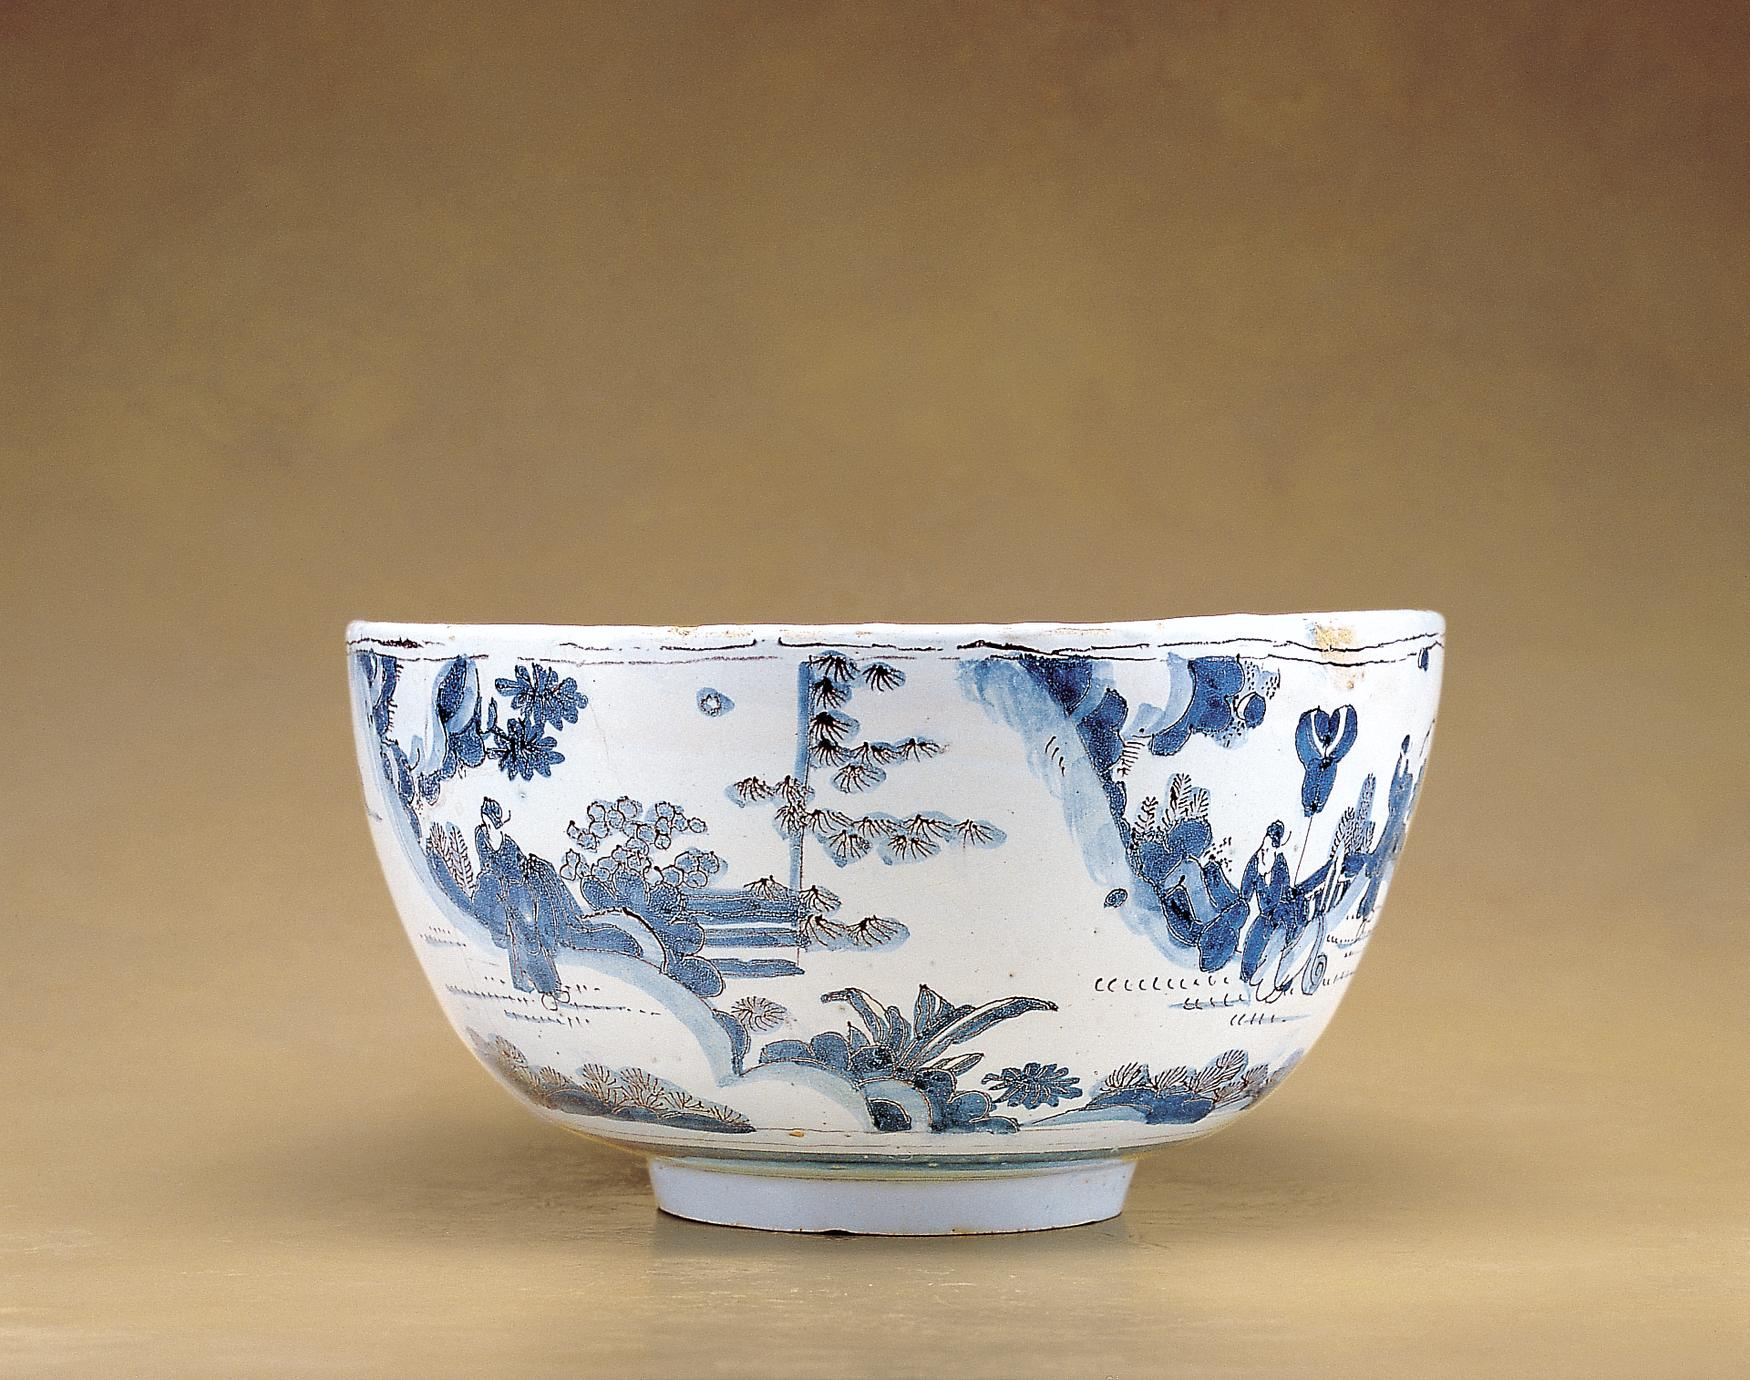 Punch bowl (1 of 3)